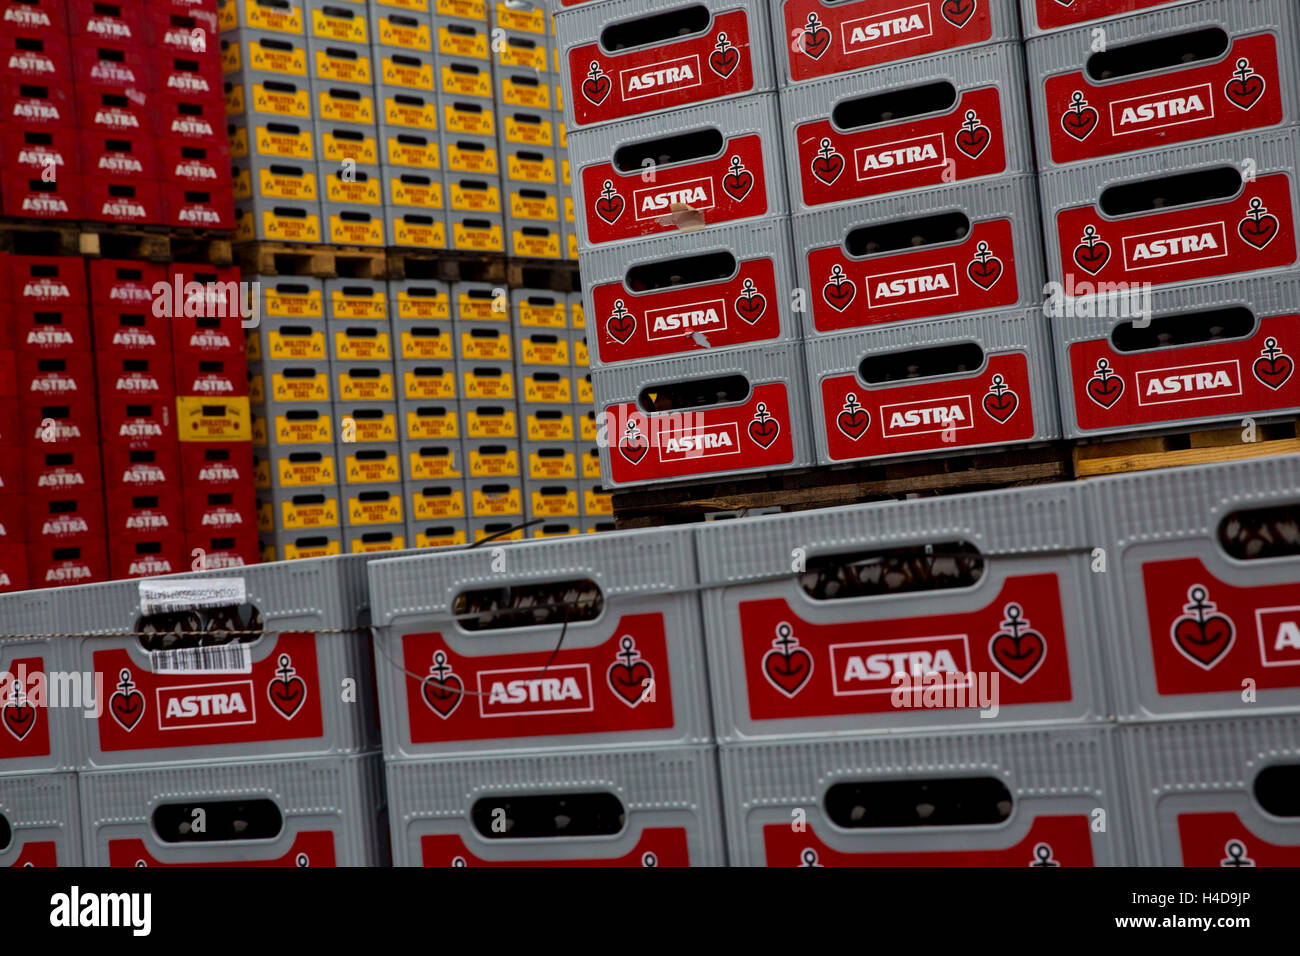 Carlsberg Deutschland GmbH report: Beer boxes with security flasks - Stock Image